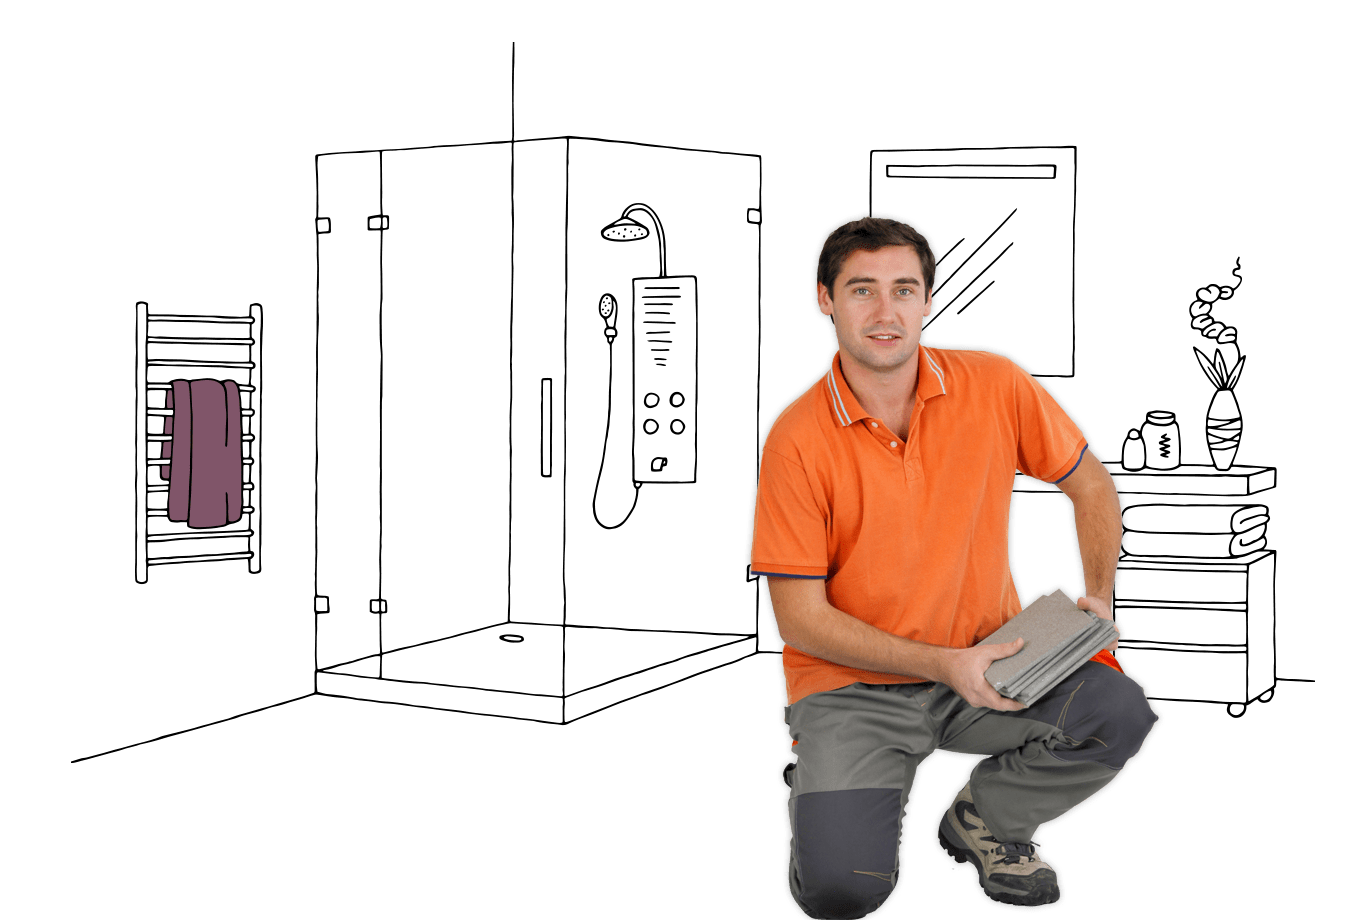 tiler insurance illustration of tradesman kneeling on ground with stack of tiles in bathroom